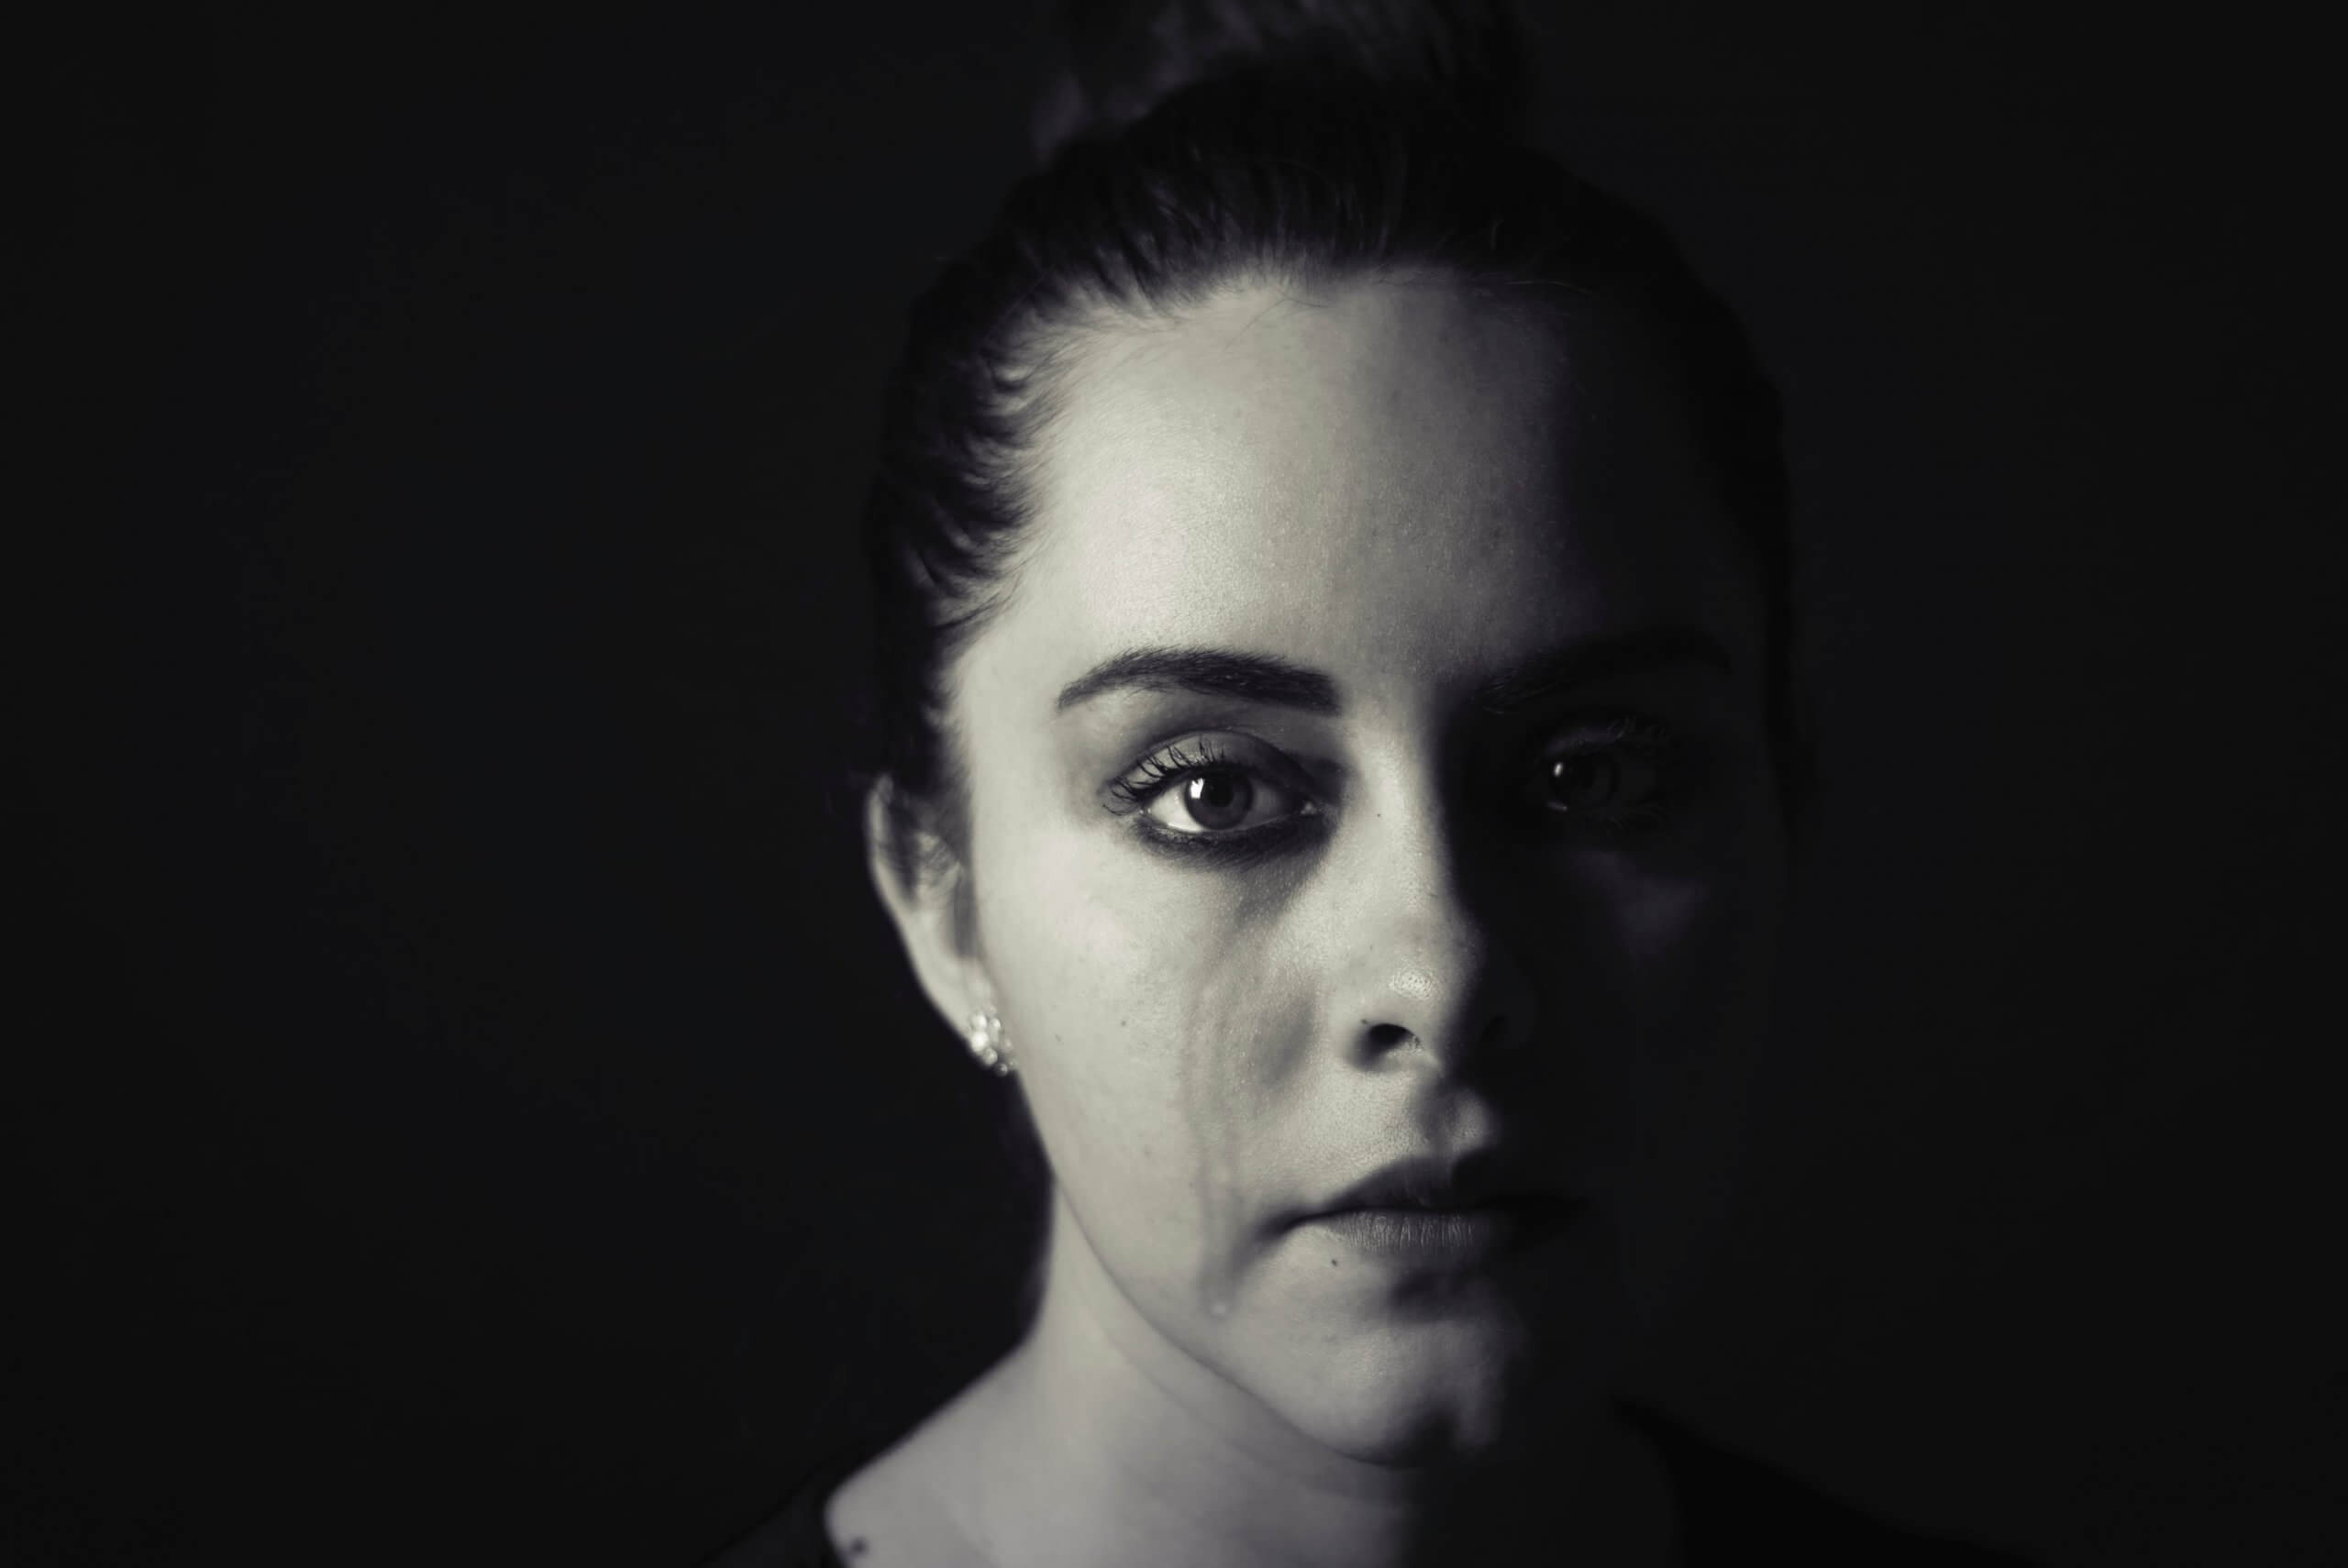 Woman crying, black and white